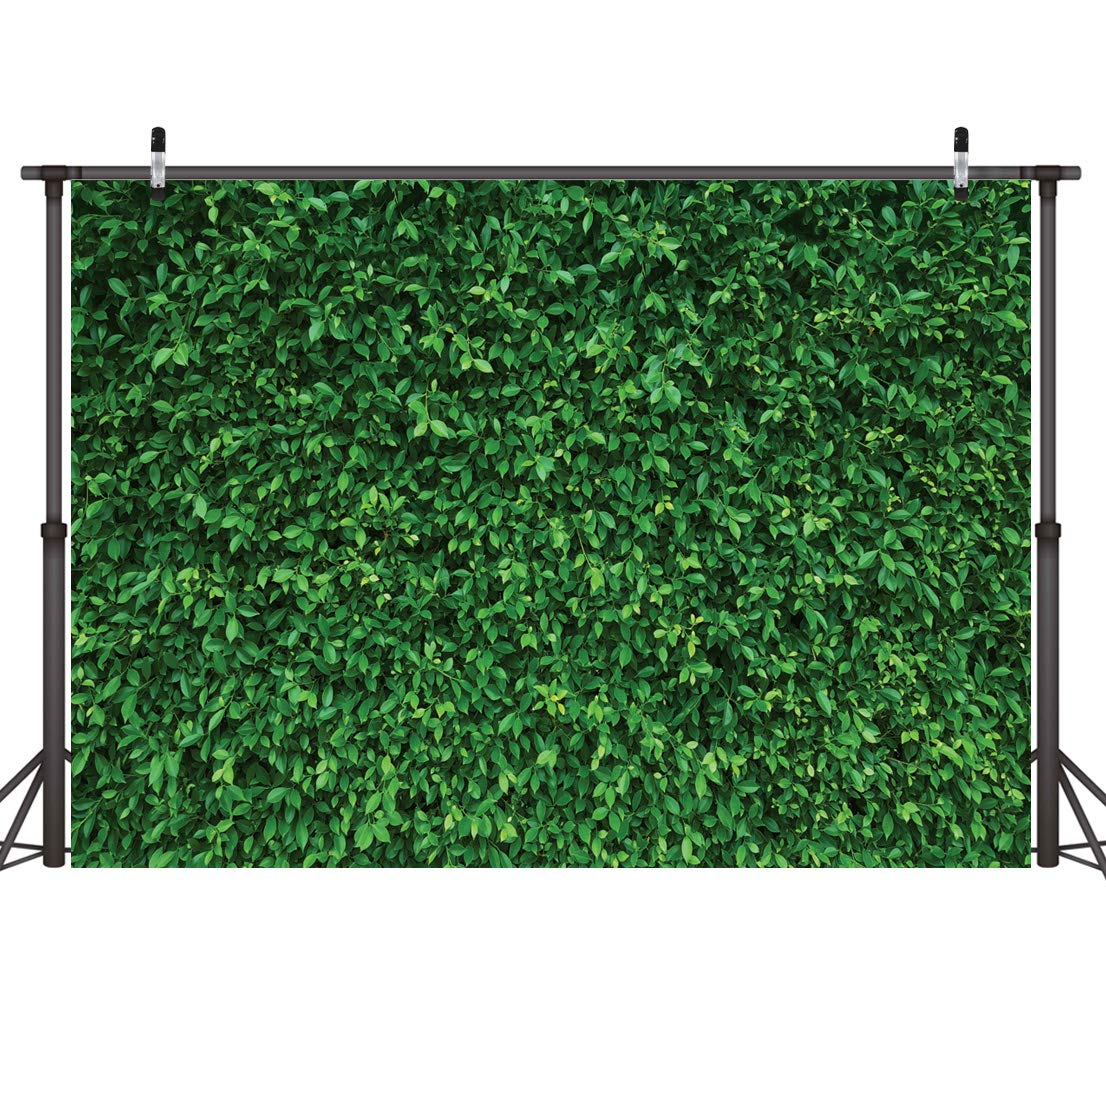 LYWYGG 7x5FT Green Leaves Photography Backdrops Mmicrofiber Nature Backdrop Birthday Background for Birthday Party Seamless Photo Booth Prop Backdrop CP-87